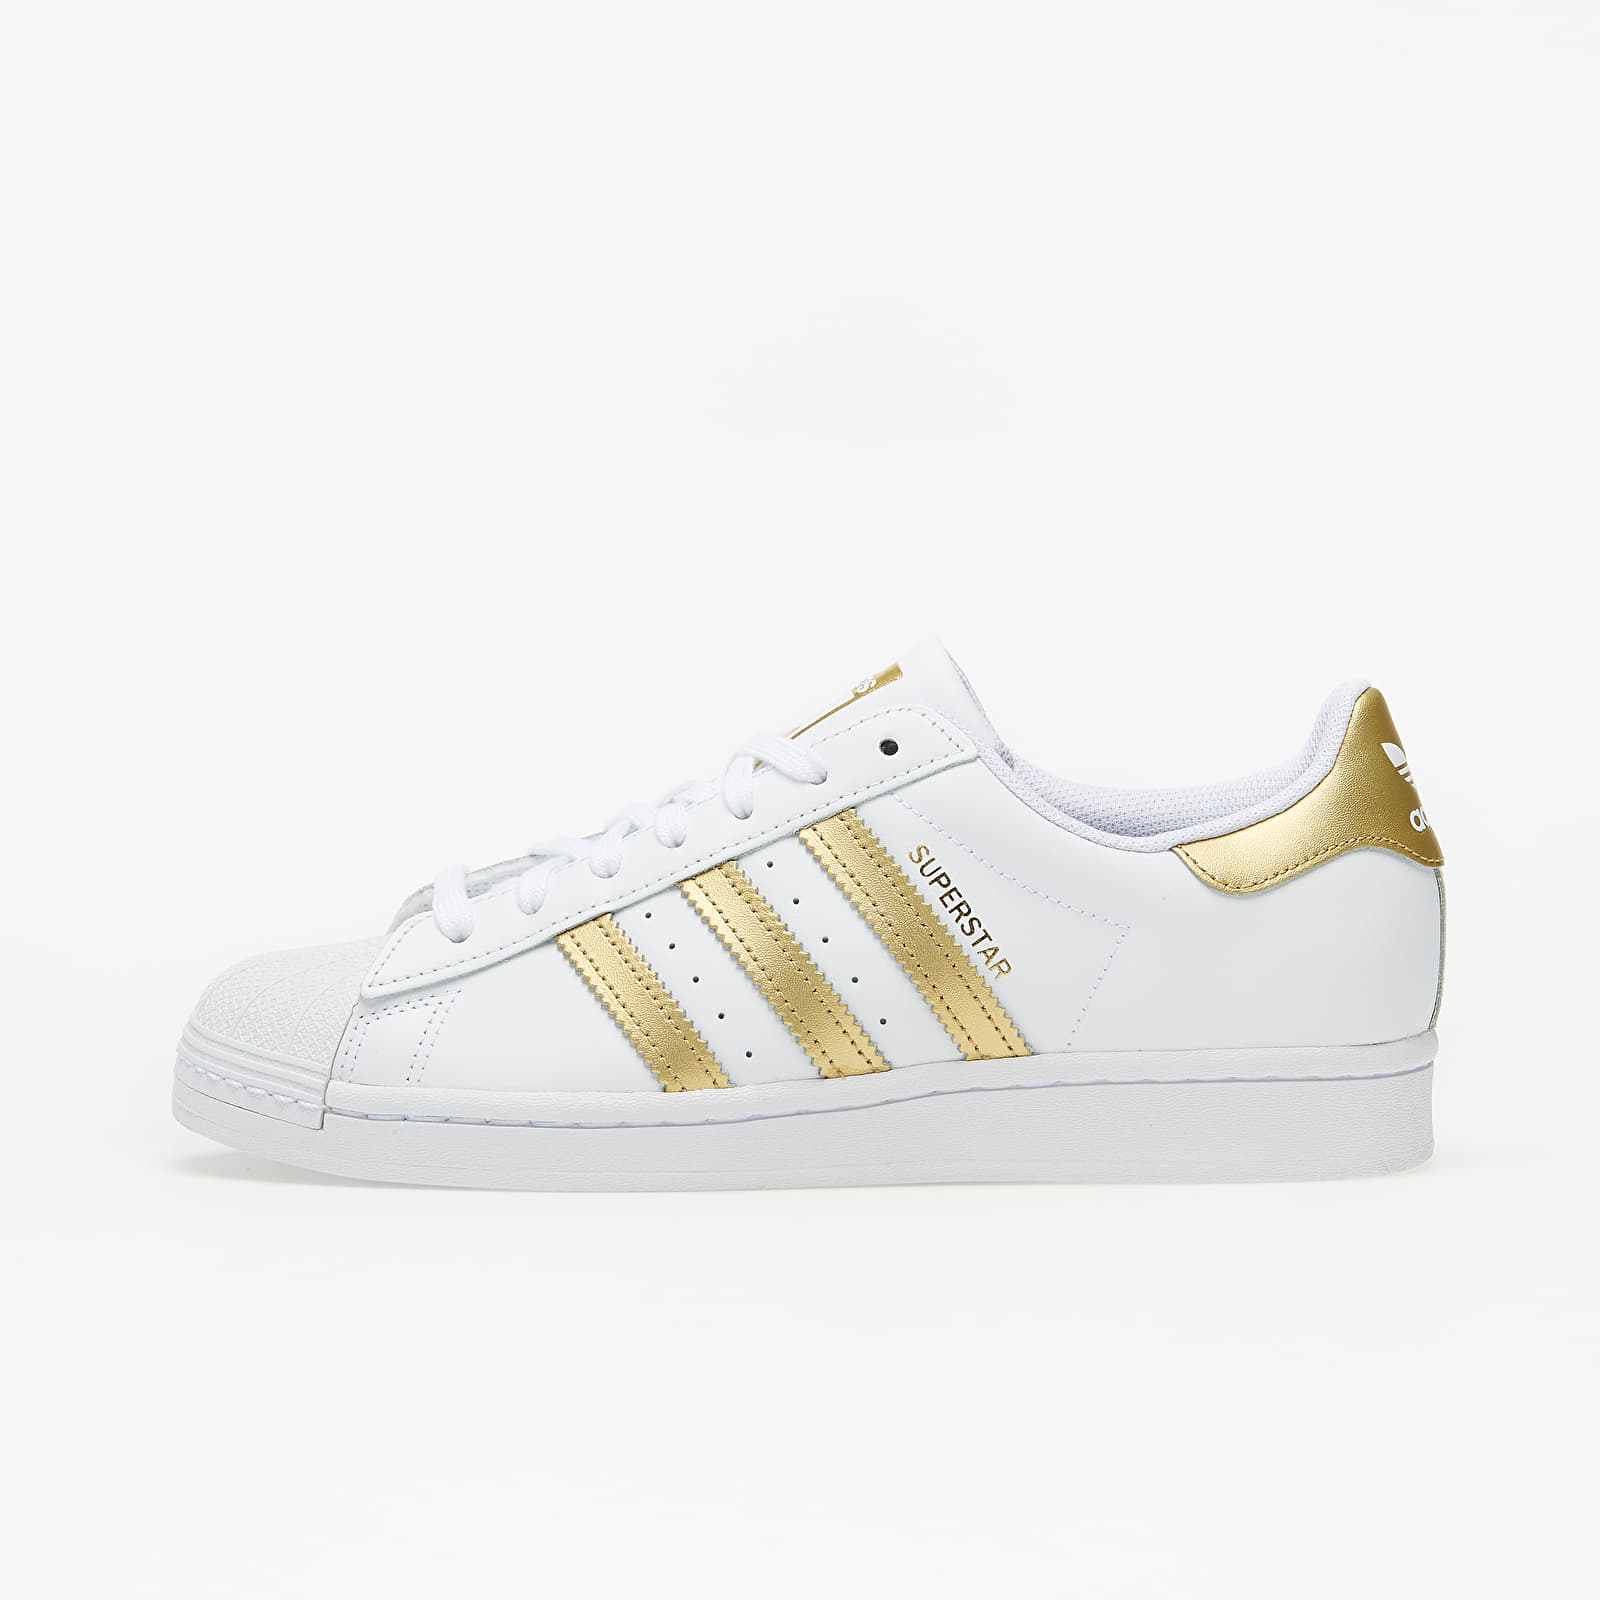 adidas Superstar W Ftw White/ Gold Metalic/ Ftw White EUR 41 1/3